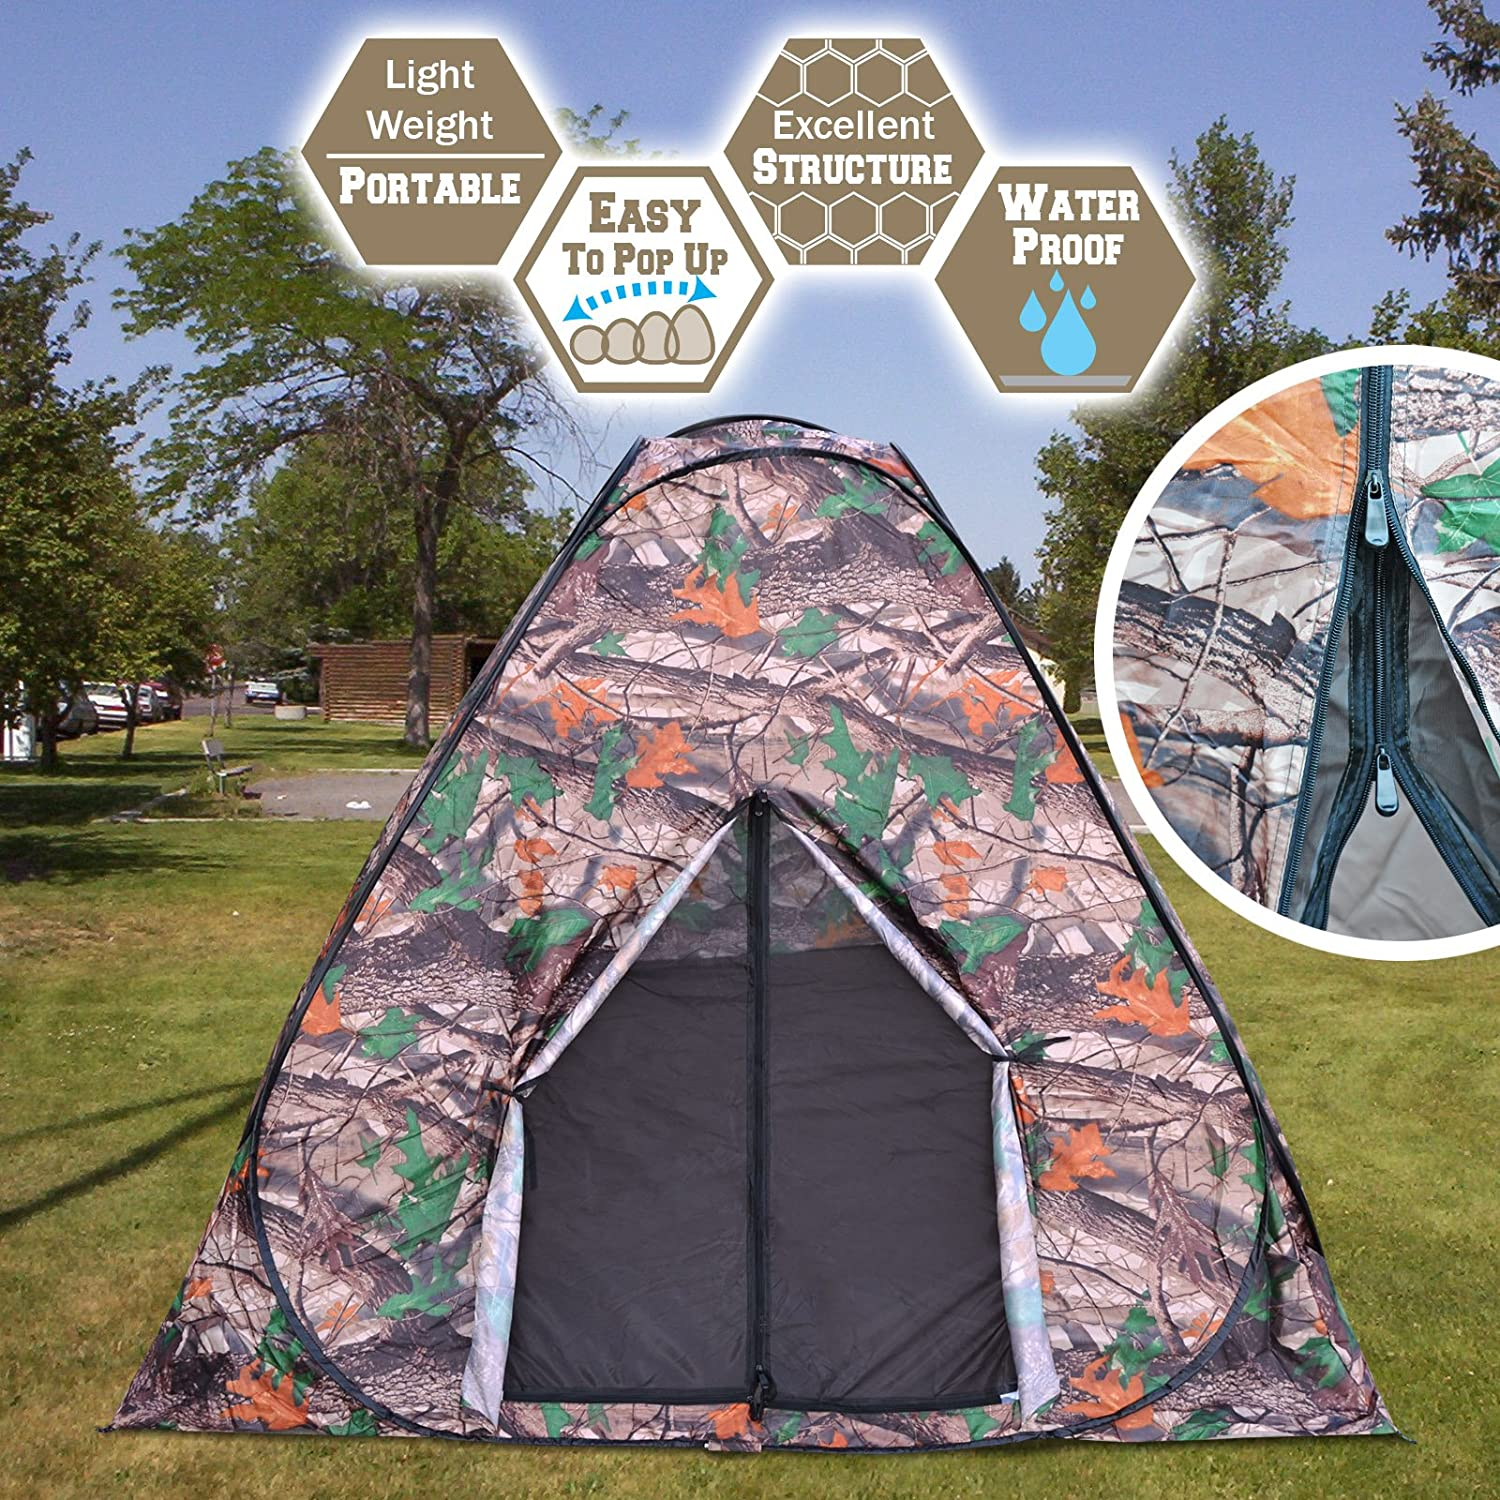 BenefitUSA Portable Camouflage Camping Hiking Instant Tent pop up 2 3 Persons Mosquito Prevention Waterproof